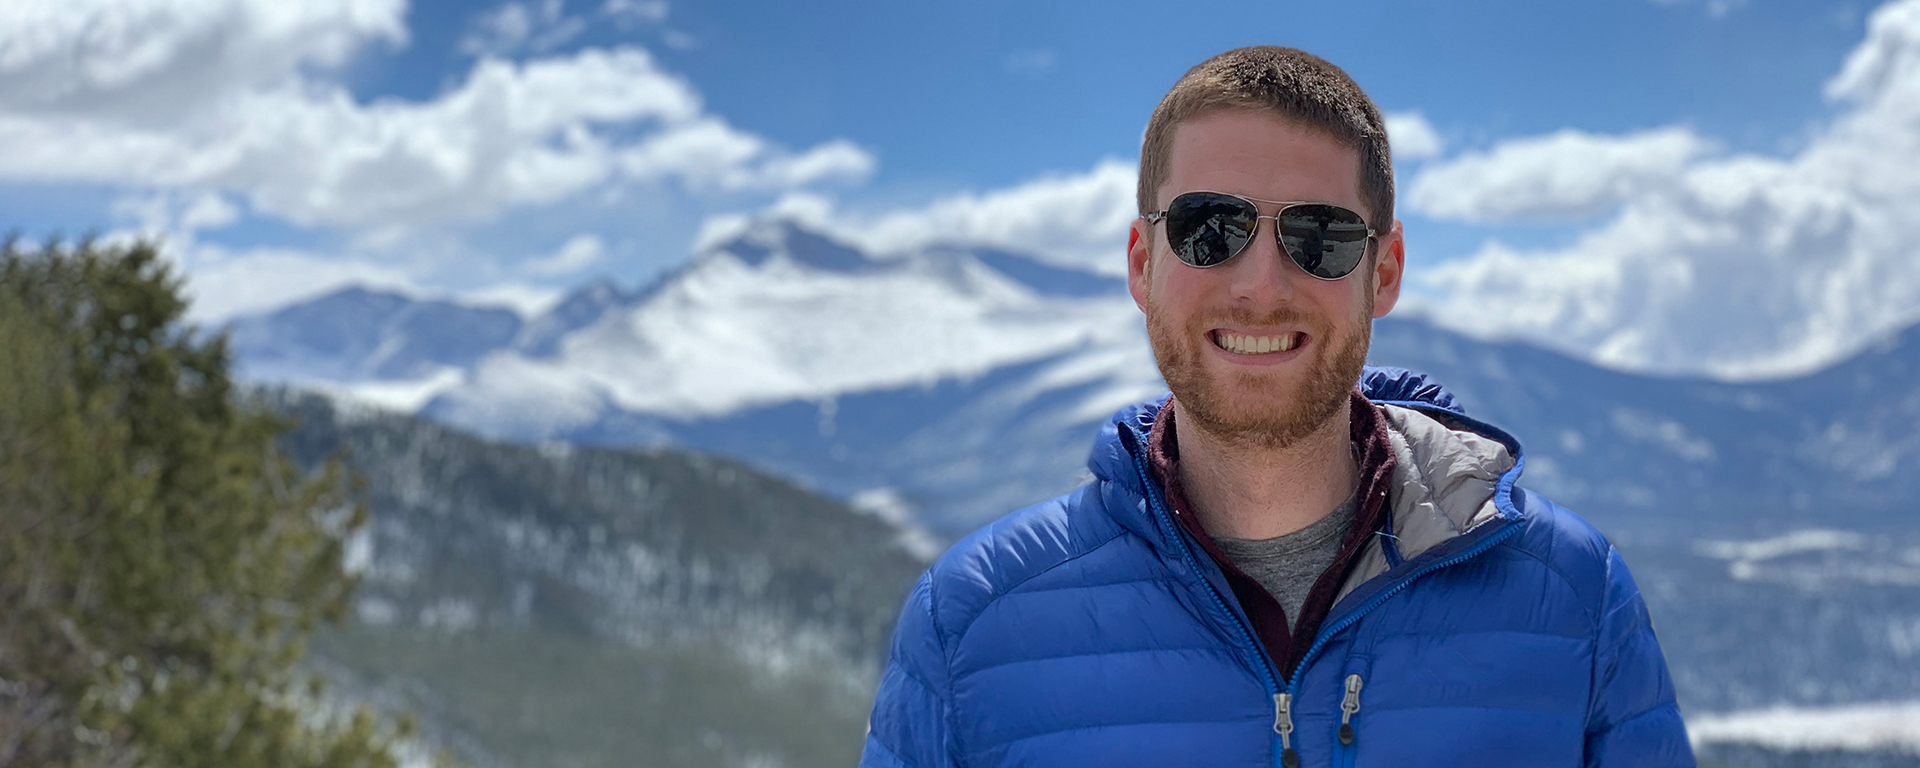 Jared, a Capital One tech associate, stands in front of snowy mountaintops